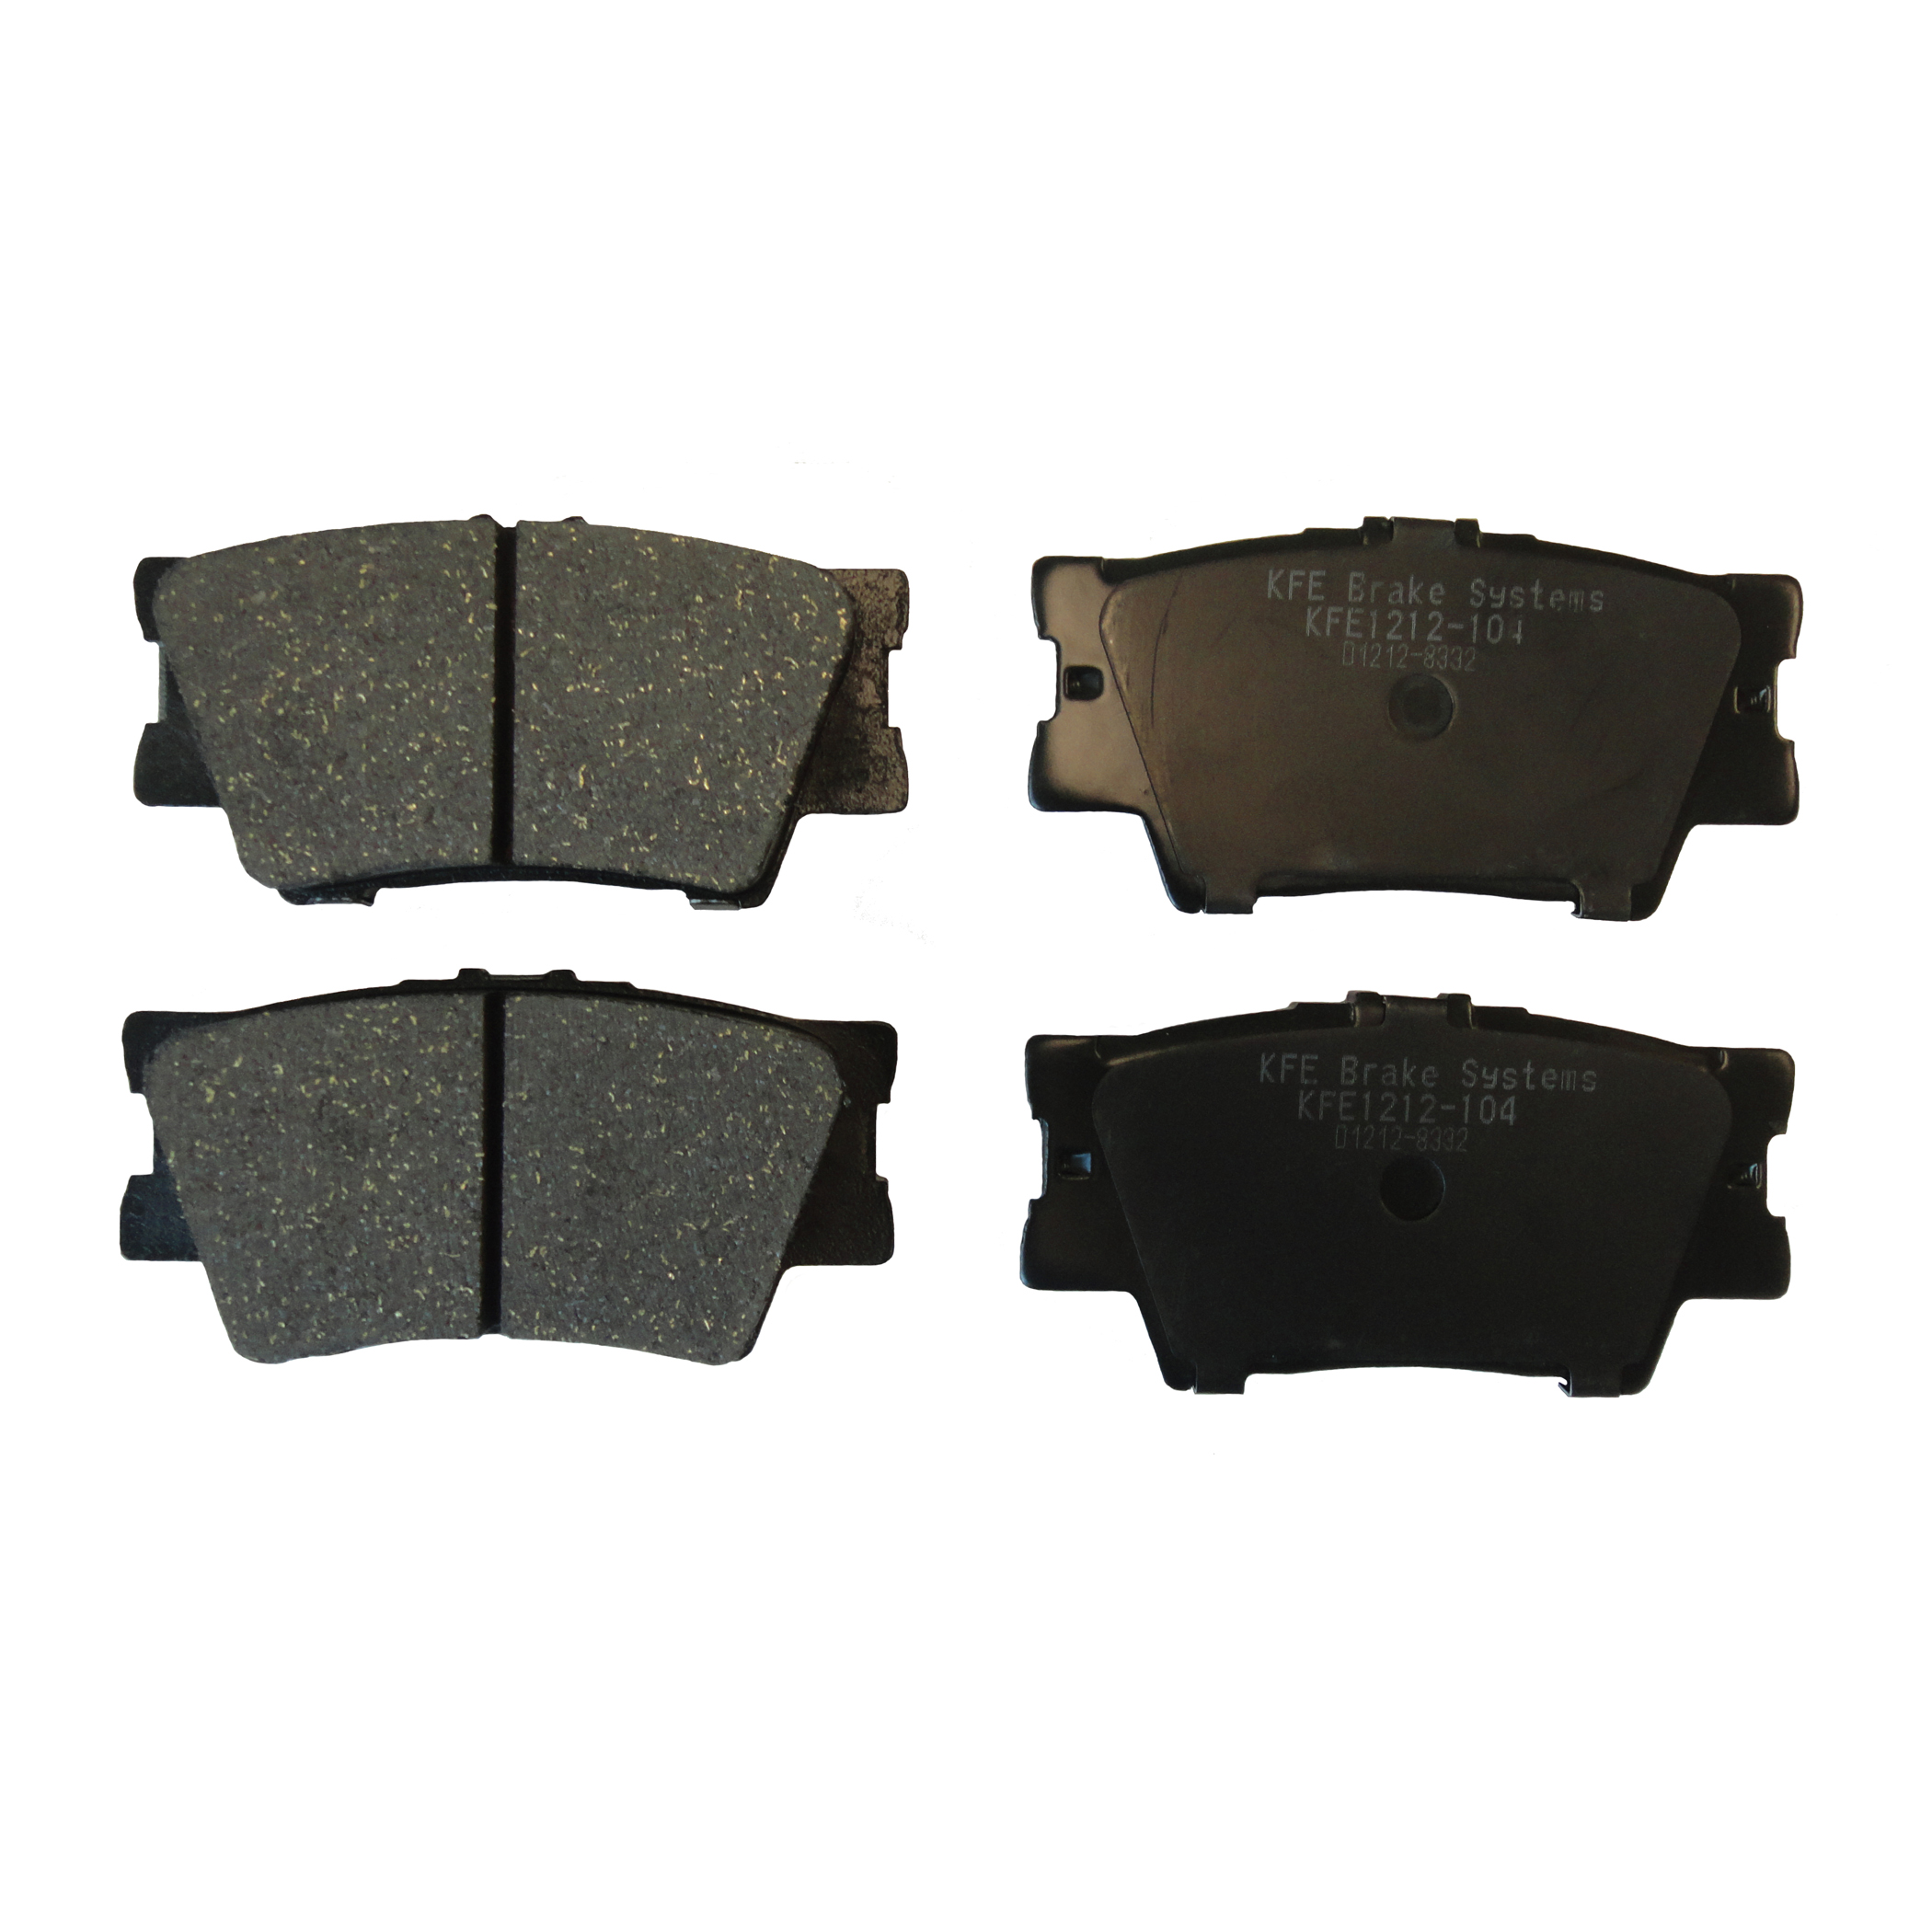 KFE1212-104 Ultra Quiet Advanced Brake Pad